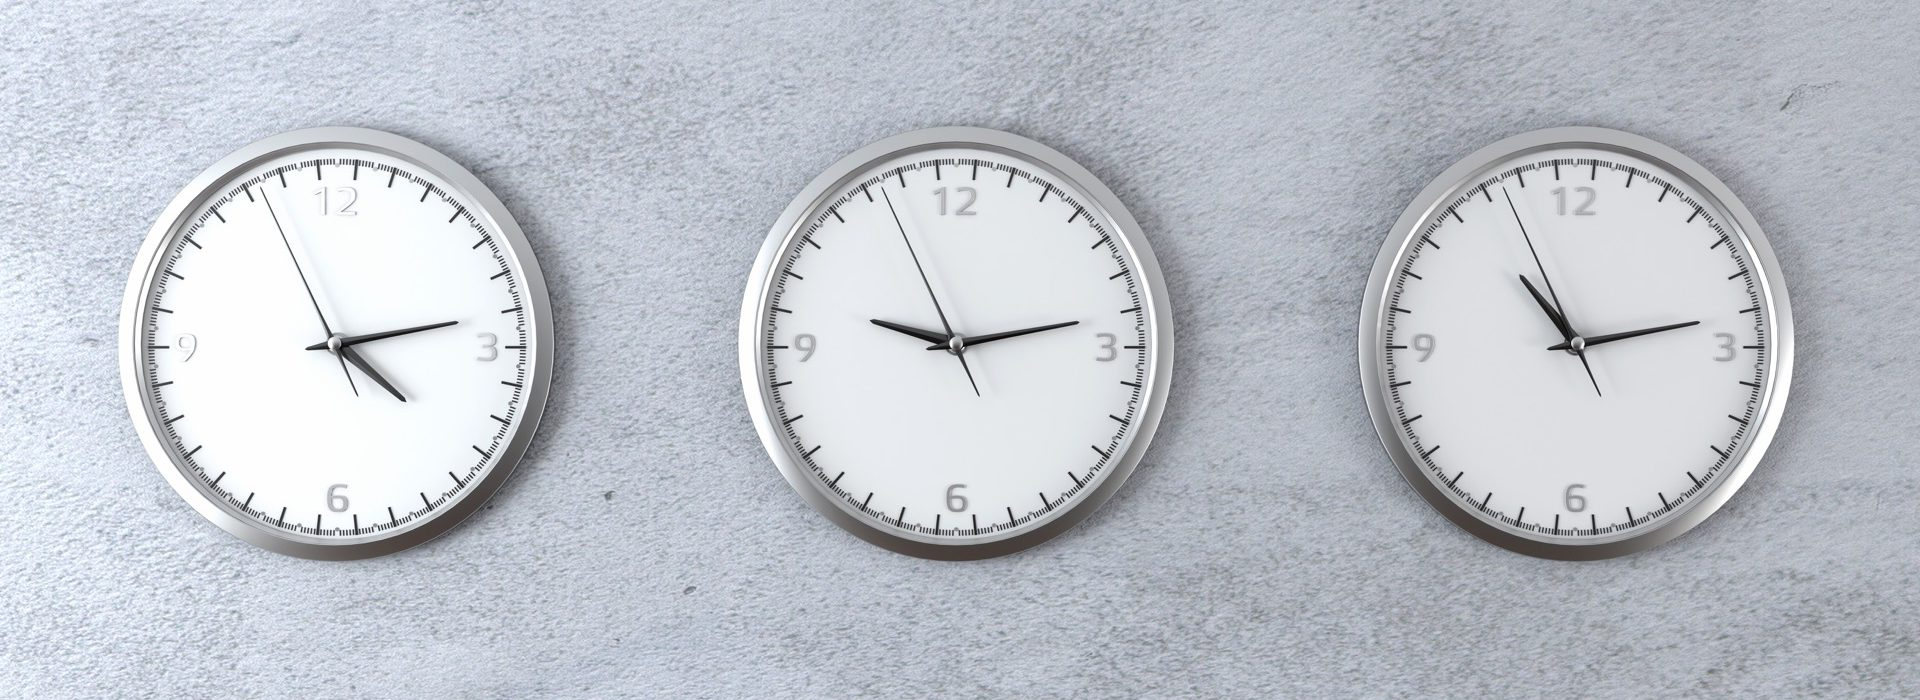 diferent time zones 3d render